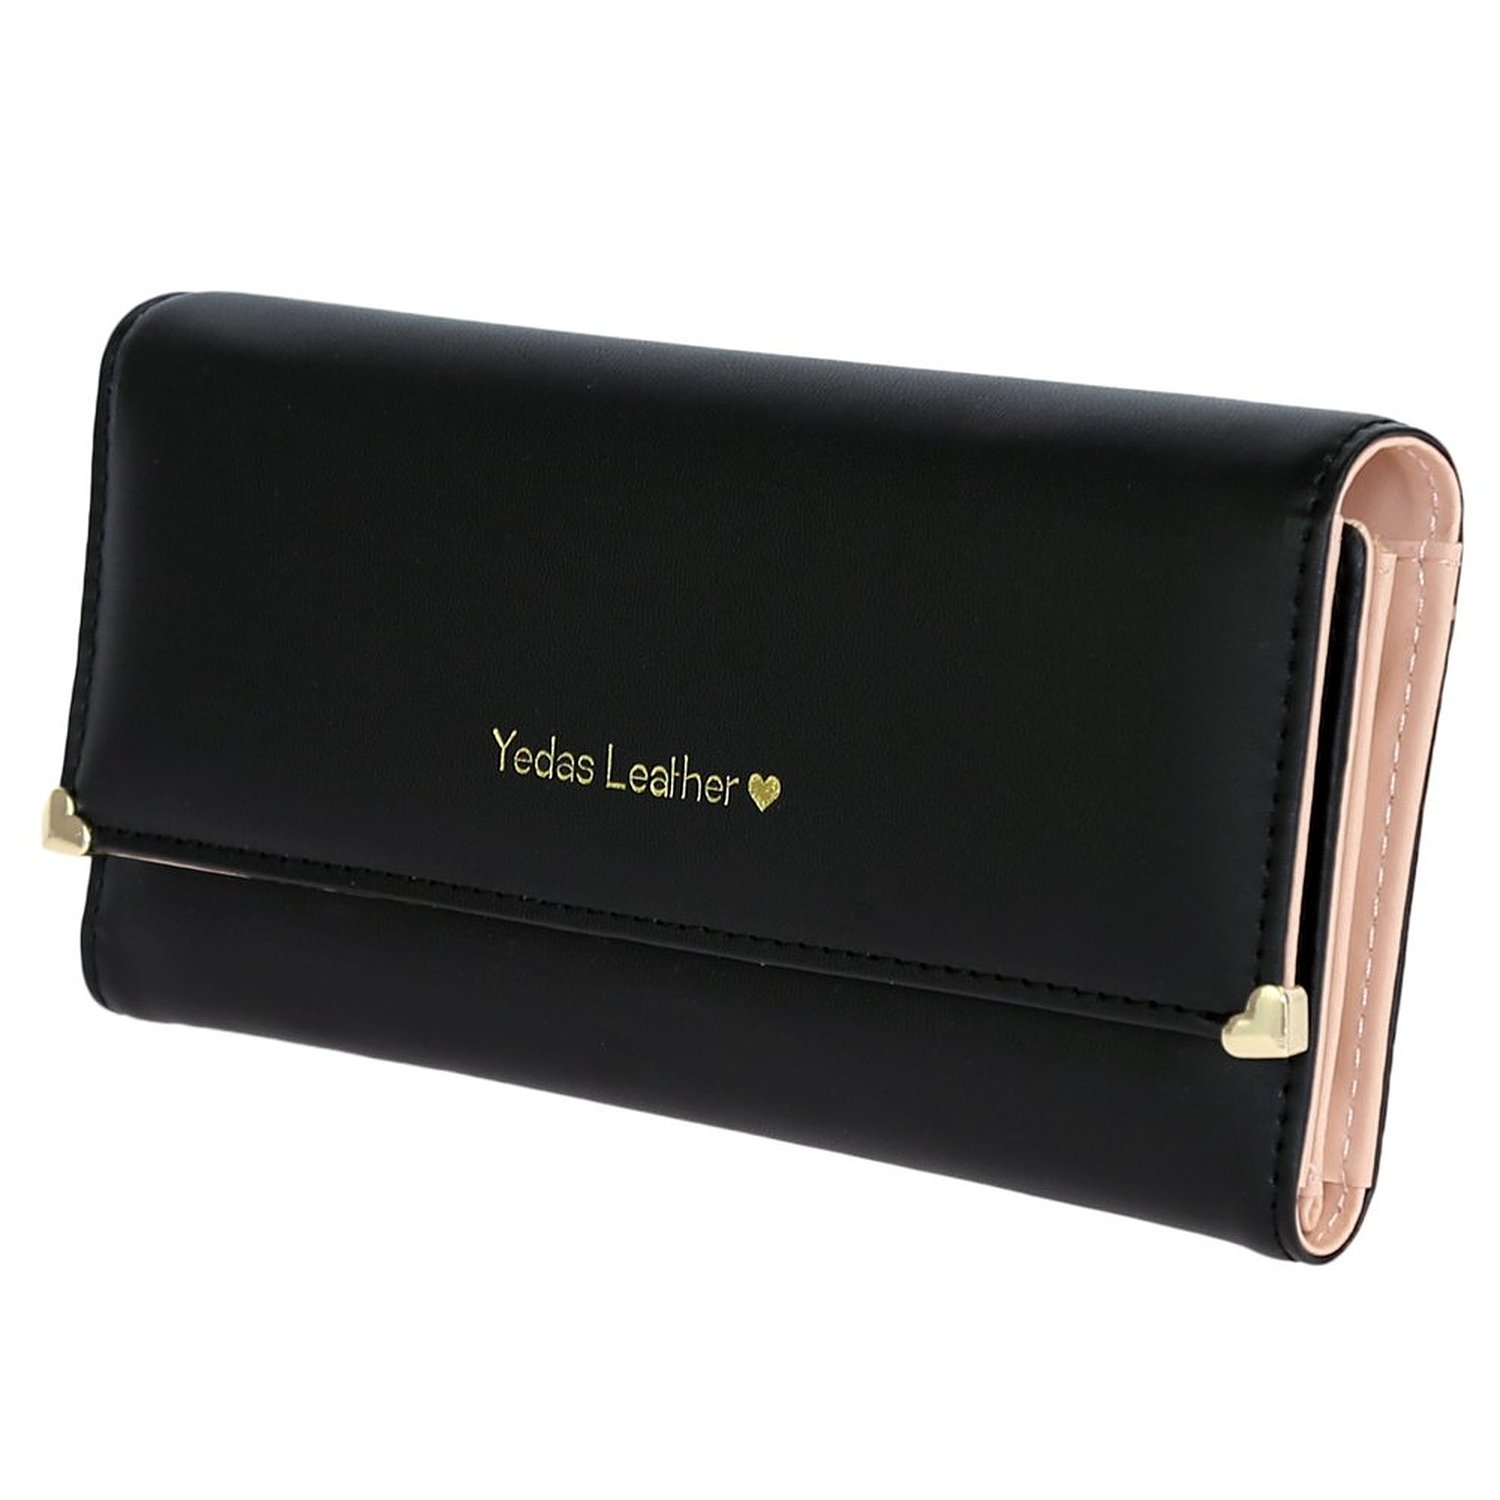 FUNOC Synthetic Leather Women Wallet Purse Credit Card Clutch holder Case (Black) at Amazon Women's Clothing store